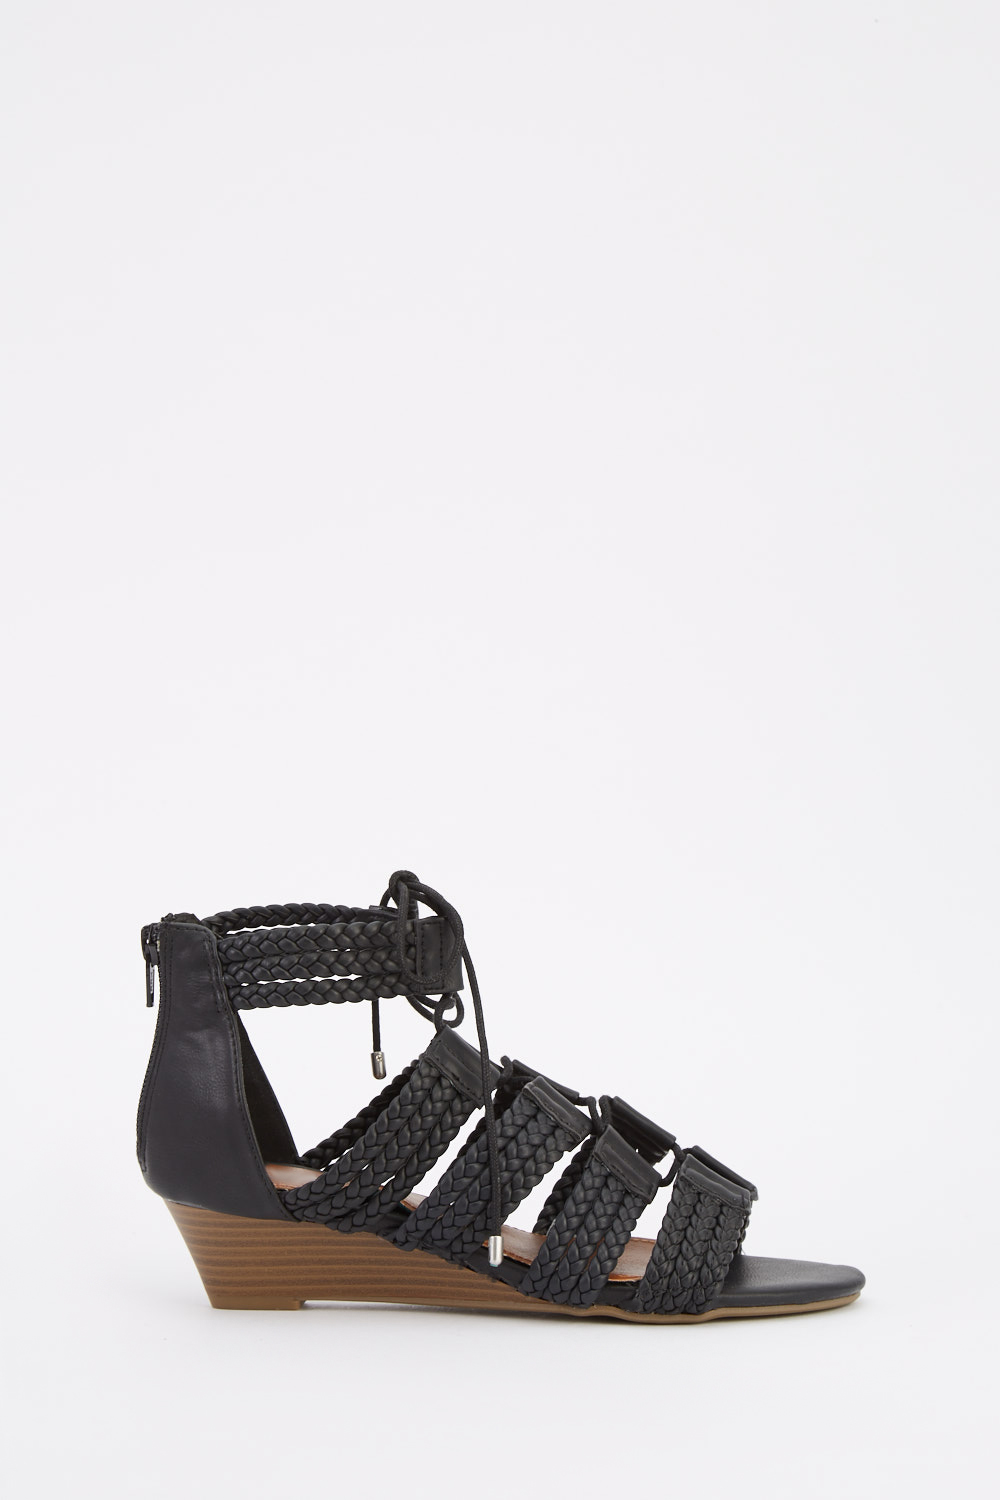 4073b0e0d681 Braided Lace Up Wedge Sandals - Black - Just £5